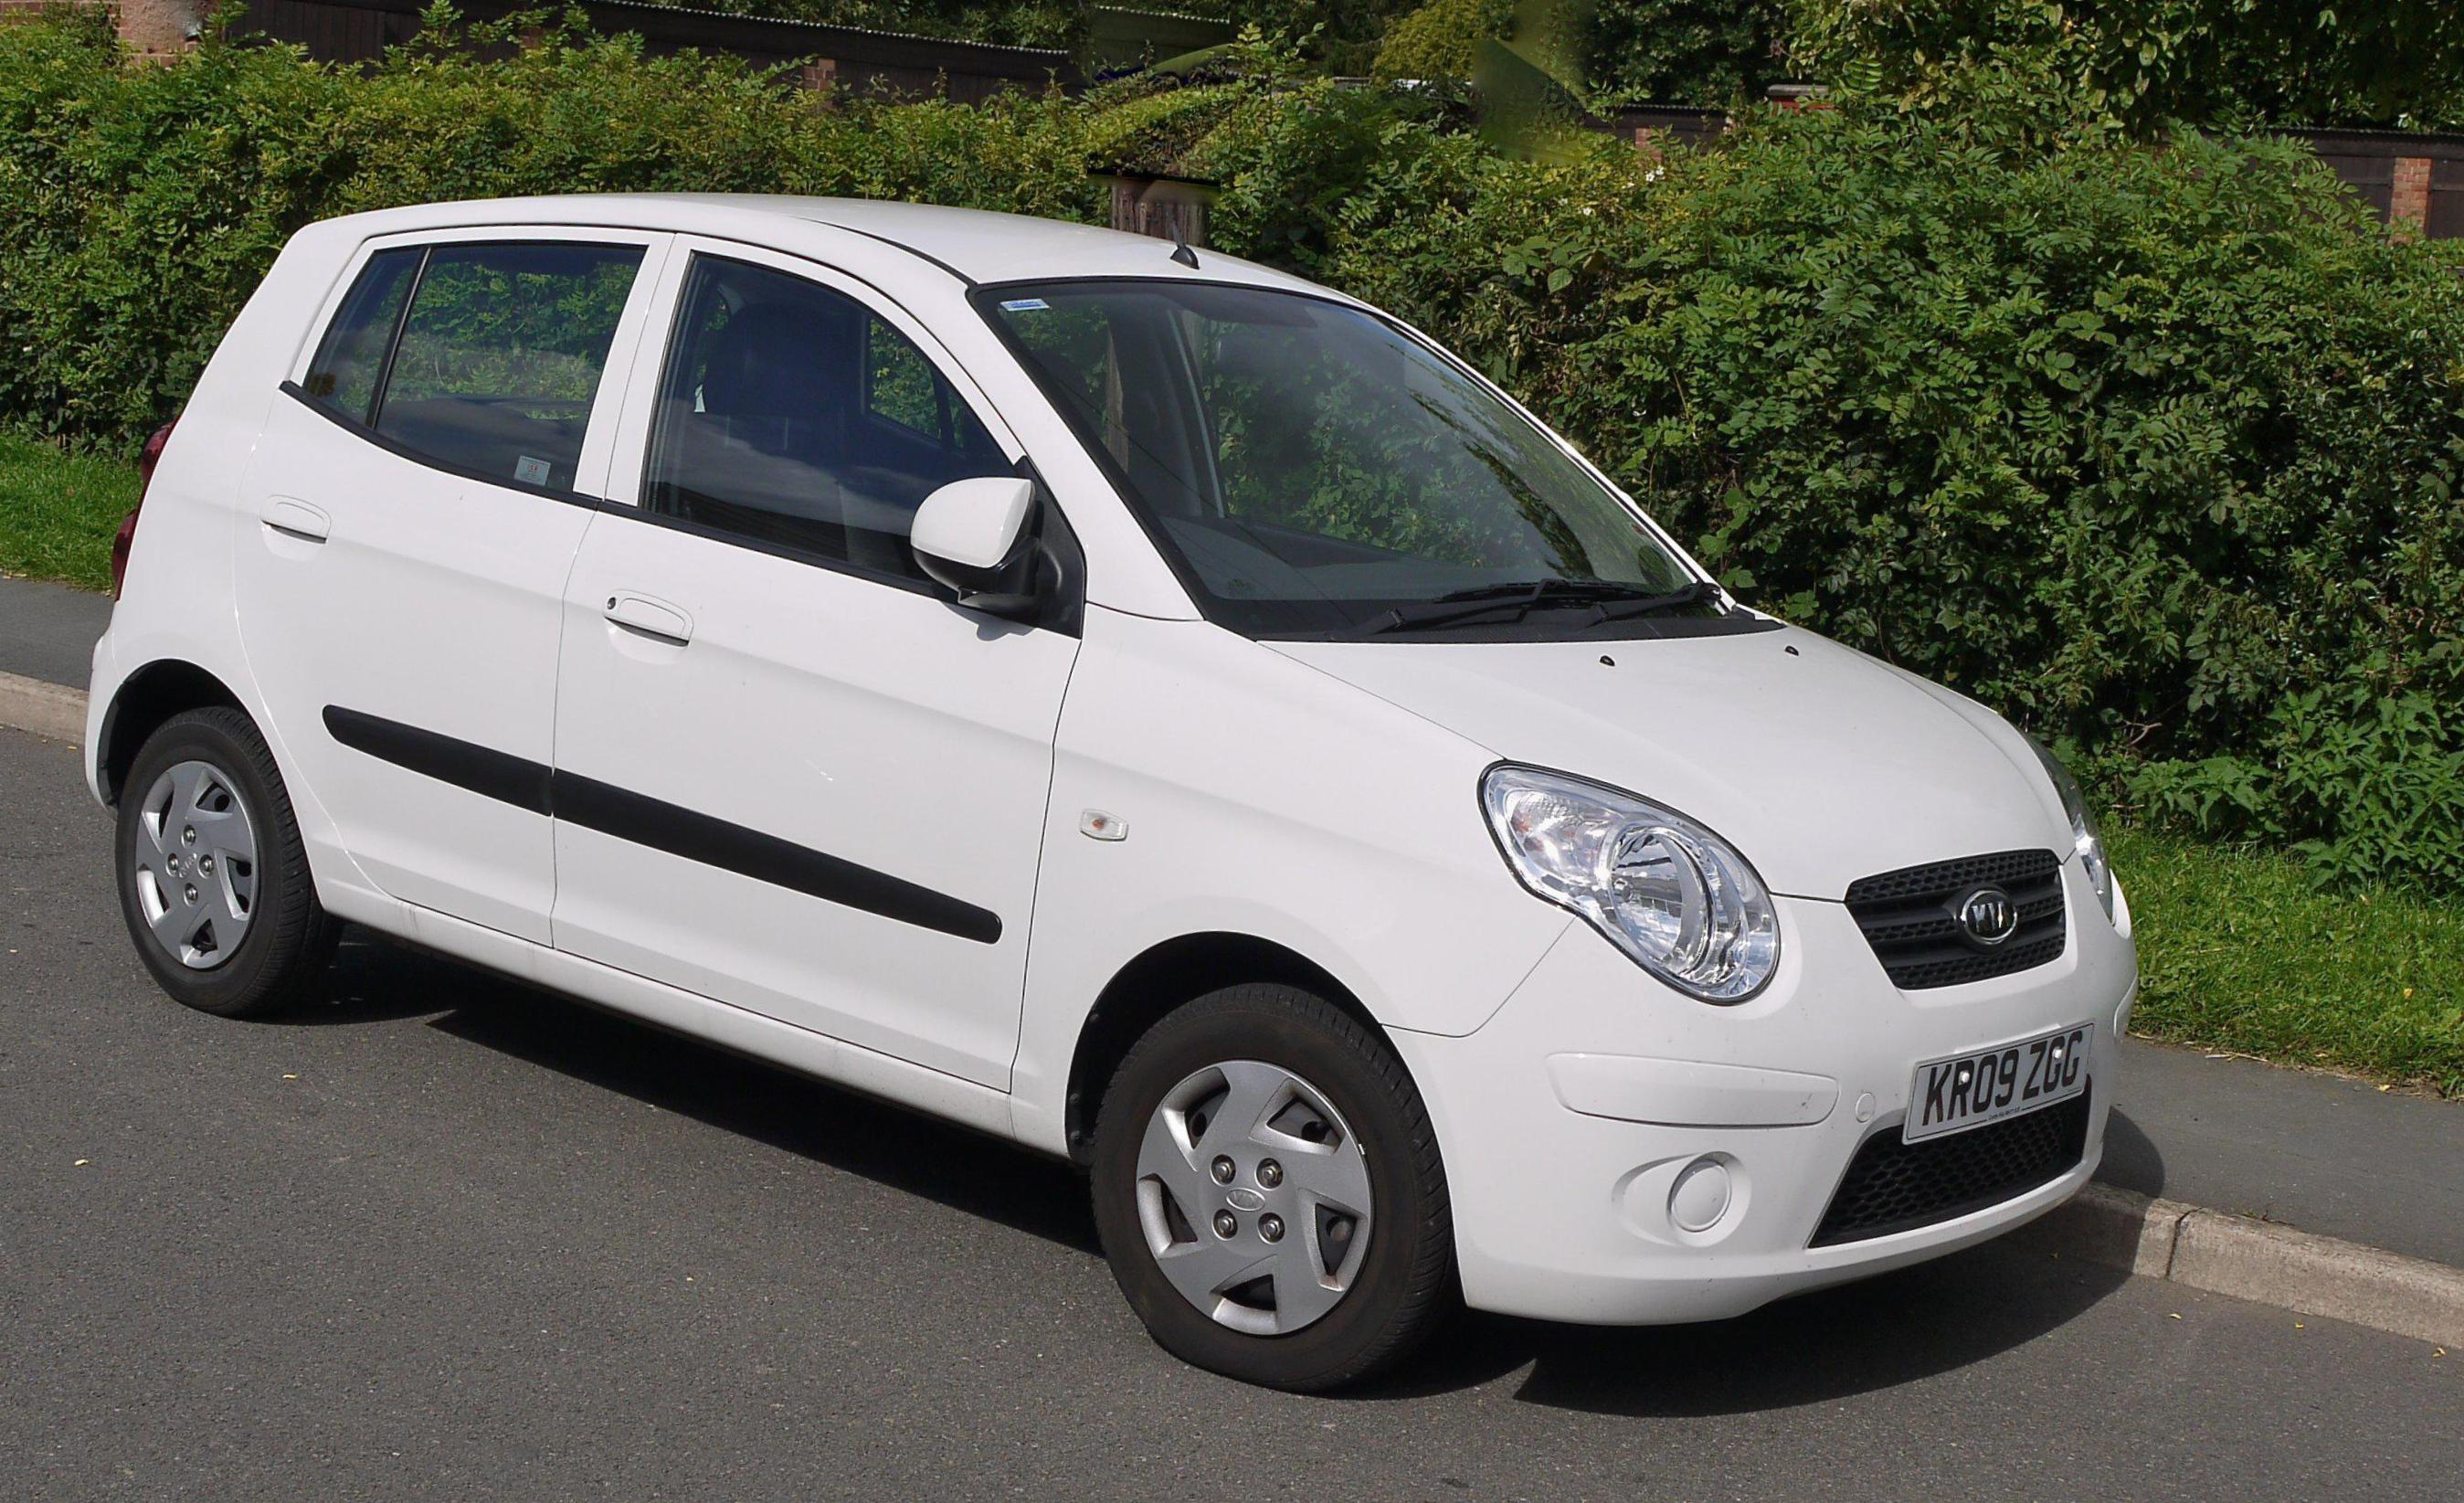 KIA Picanto Specification 2004